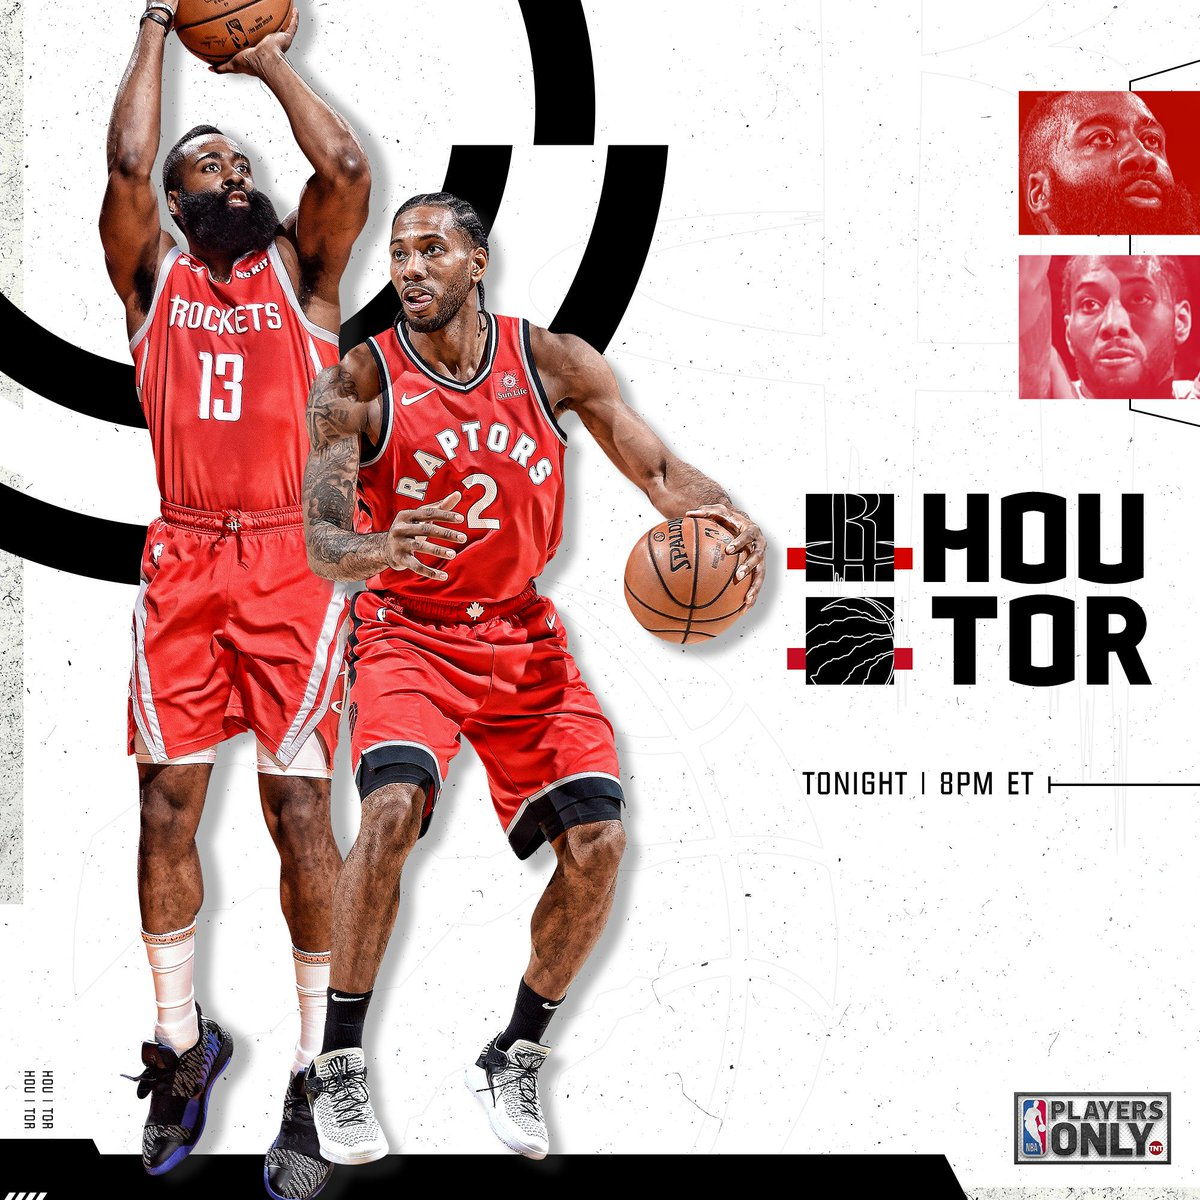 We've got a fun night of hoops in store tonight on TNT! #PlayersOnly   @HoustonRockets vs. @Raptors // 8pm ET @celtics vs. @warriors // 10:30pm ET